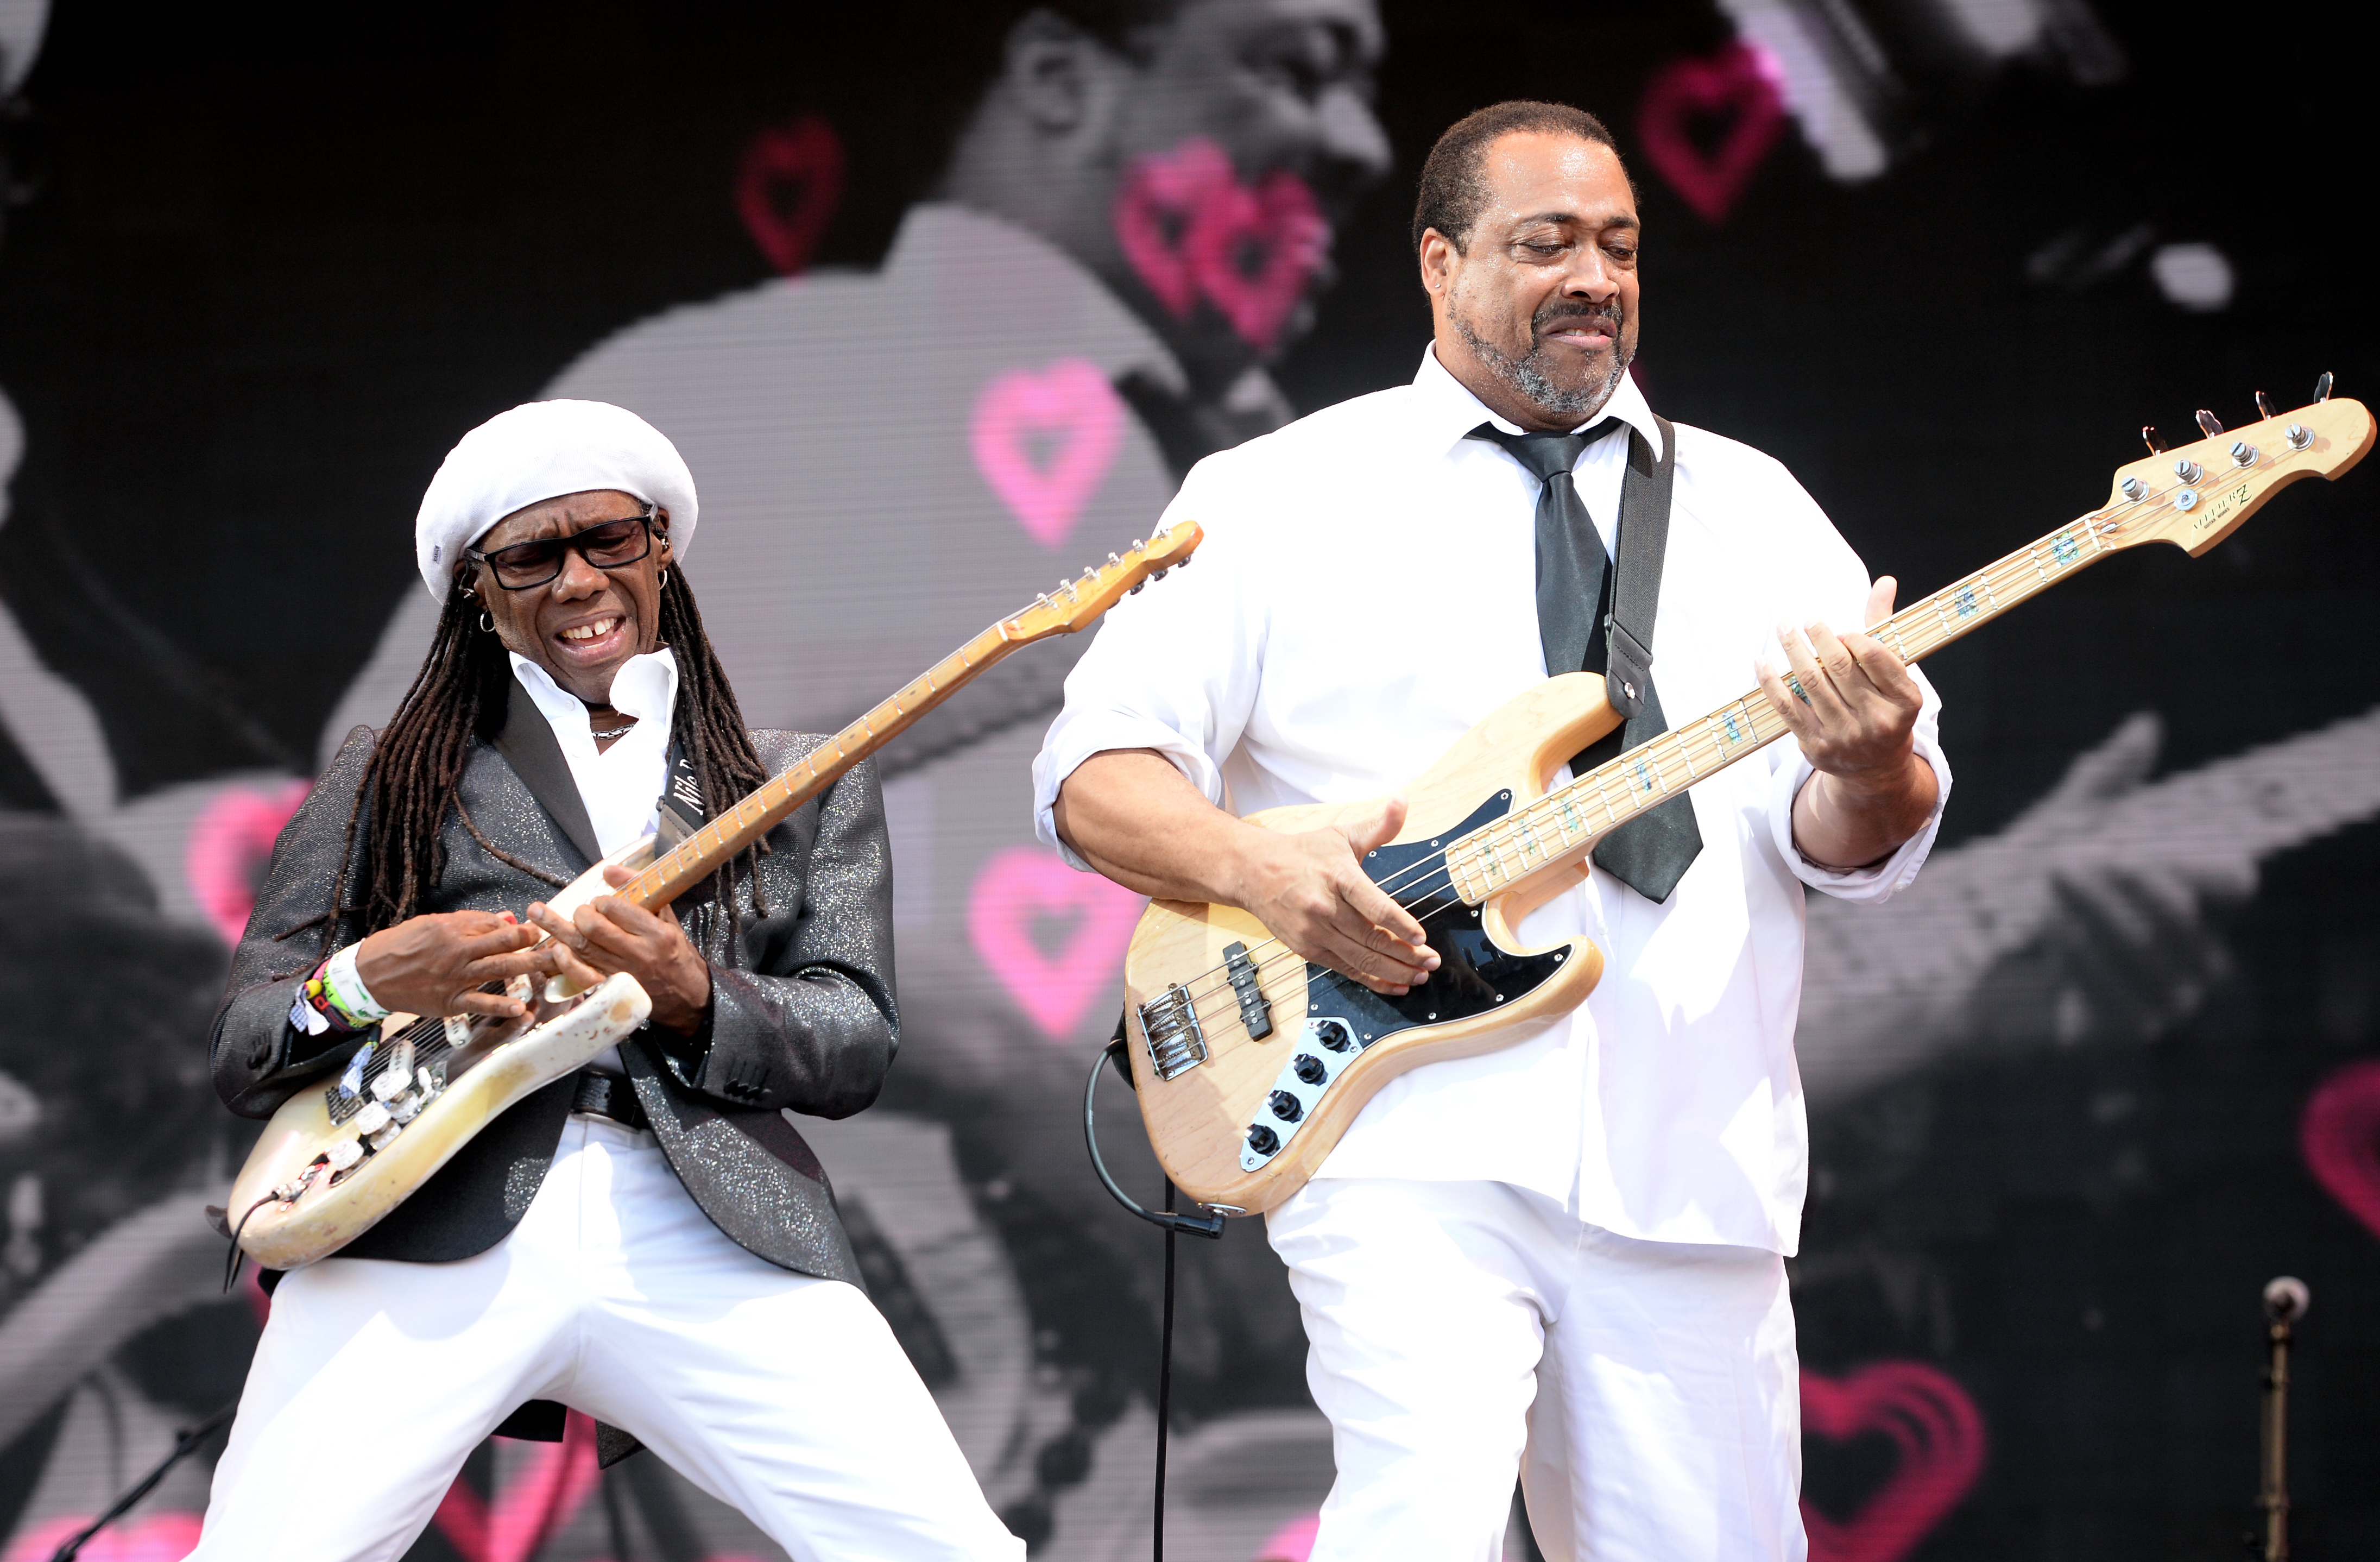 Nile Rodgers and Chic at Glastonbury